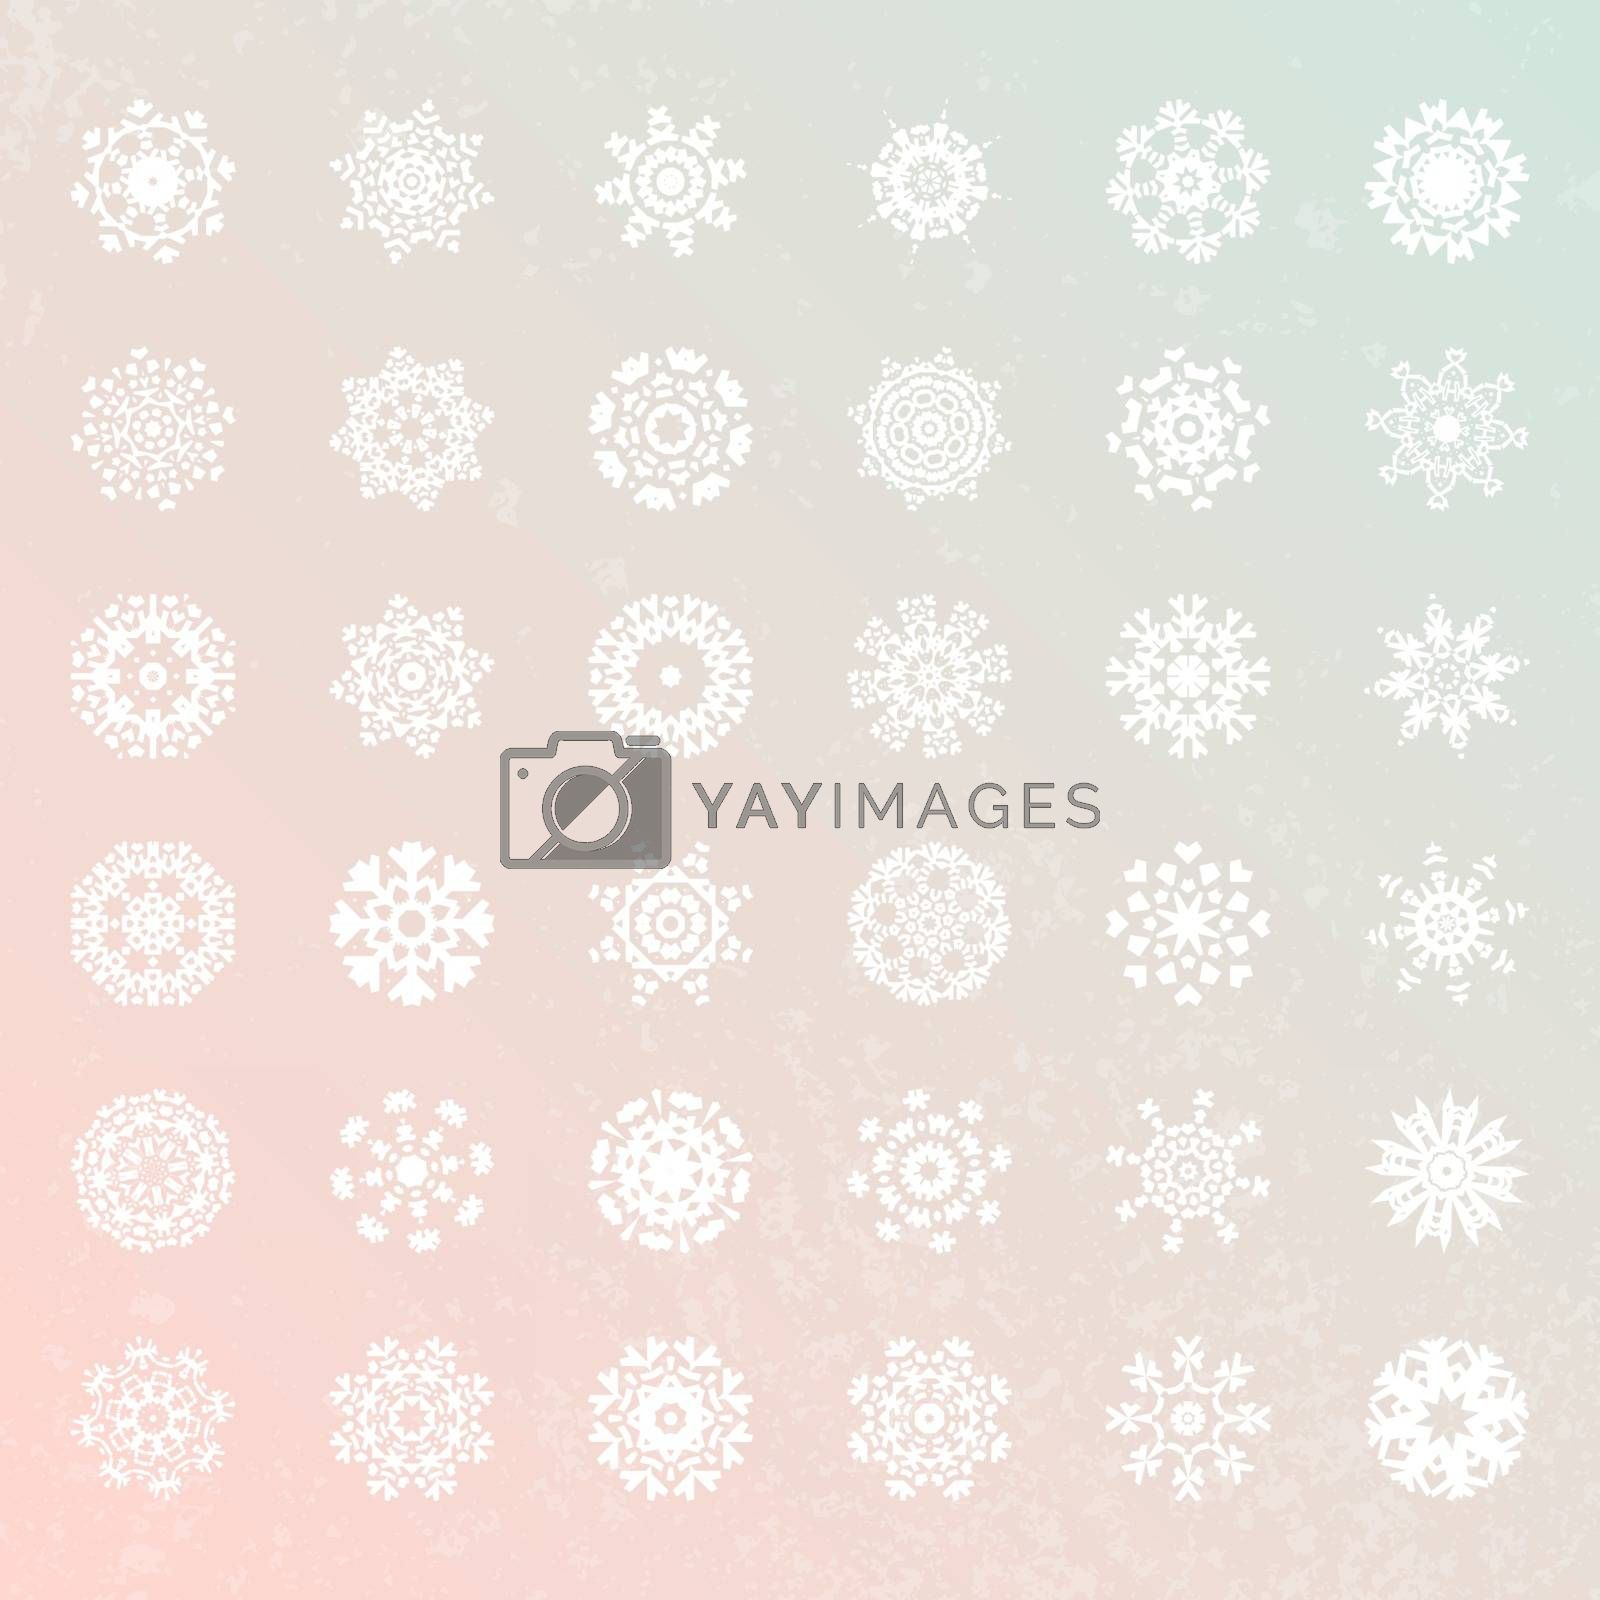 Snowflake vector collection. Unique winter decoration elements in flat style. Christmas and New Year symbols. Geometric circle shapes.